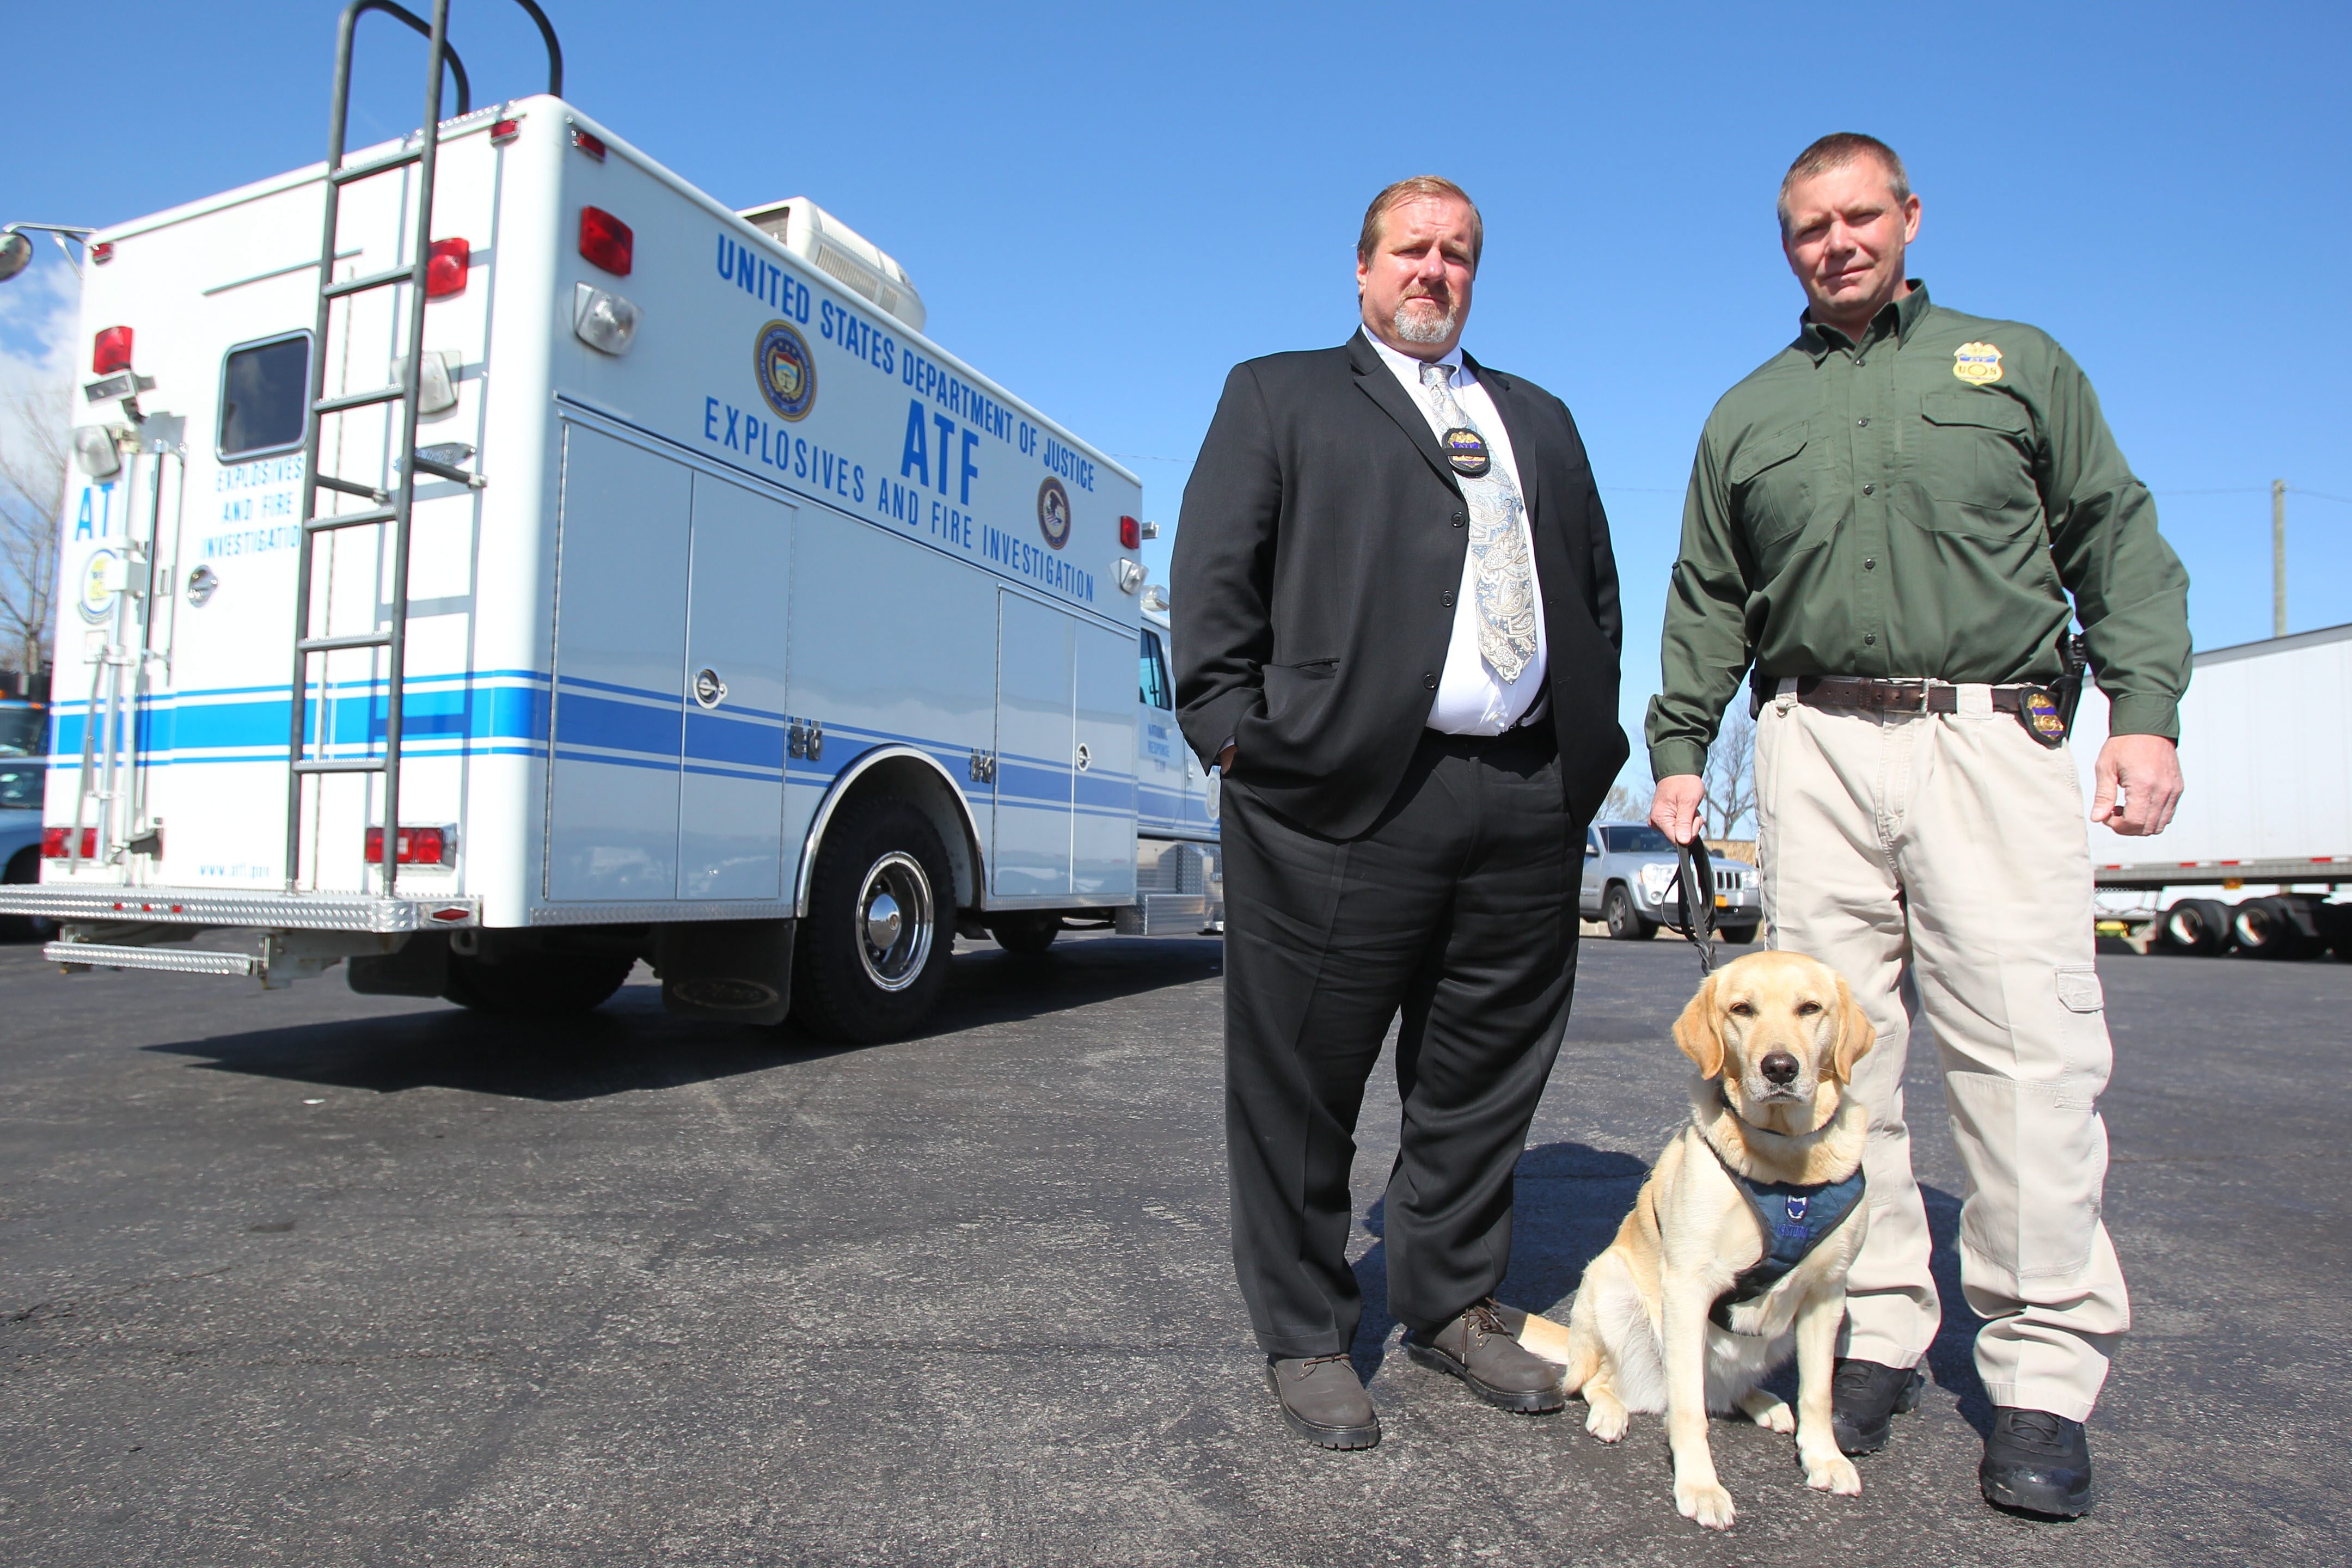 Bureau of Alcohol, Tobacco, Firearms and Explosives special agent Gerry O'Sullivan, right, and Dolly, an explosives detection canine, are joined by fellow ATF special agent Steve Dickey.